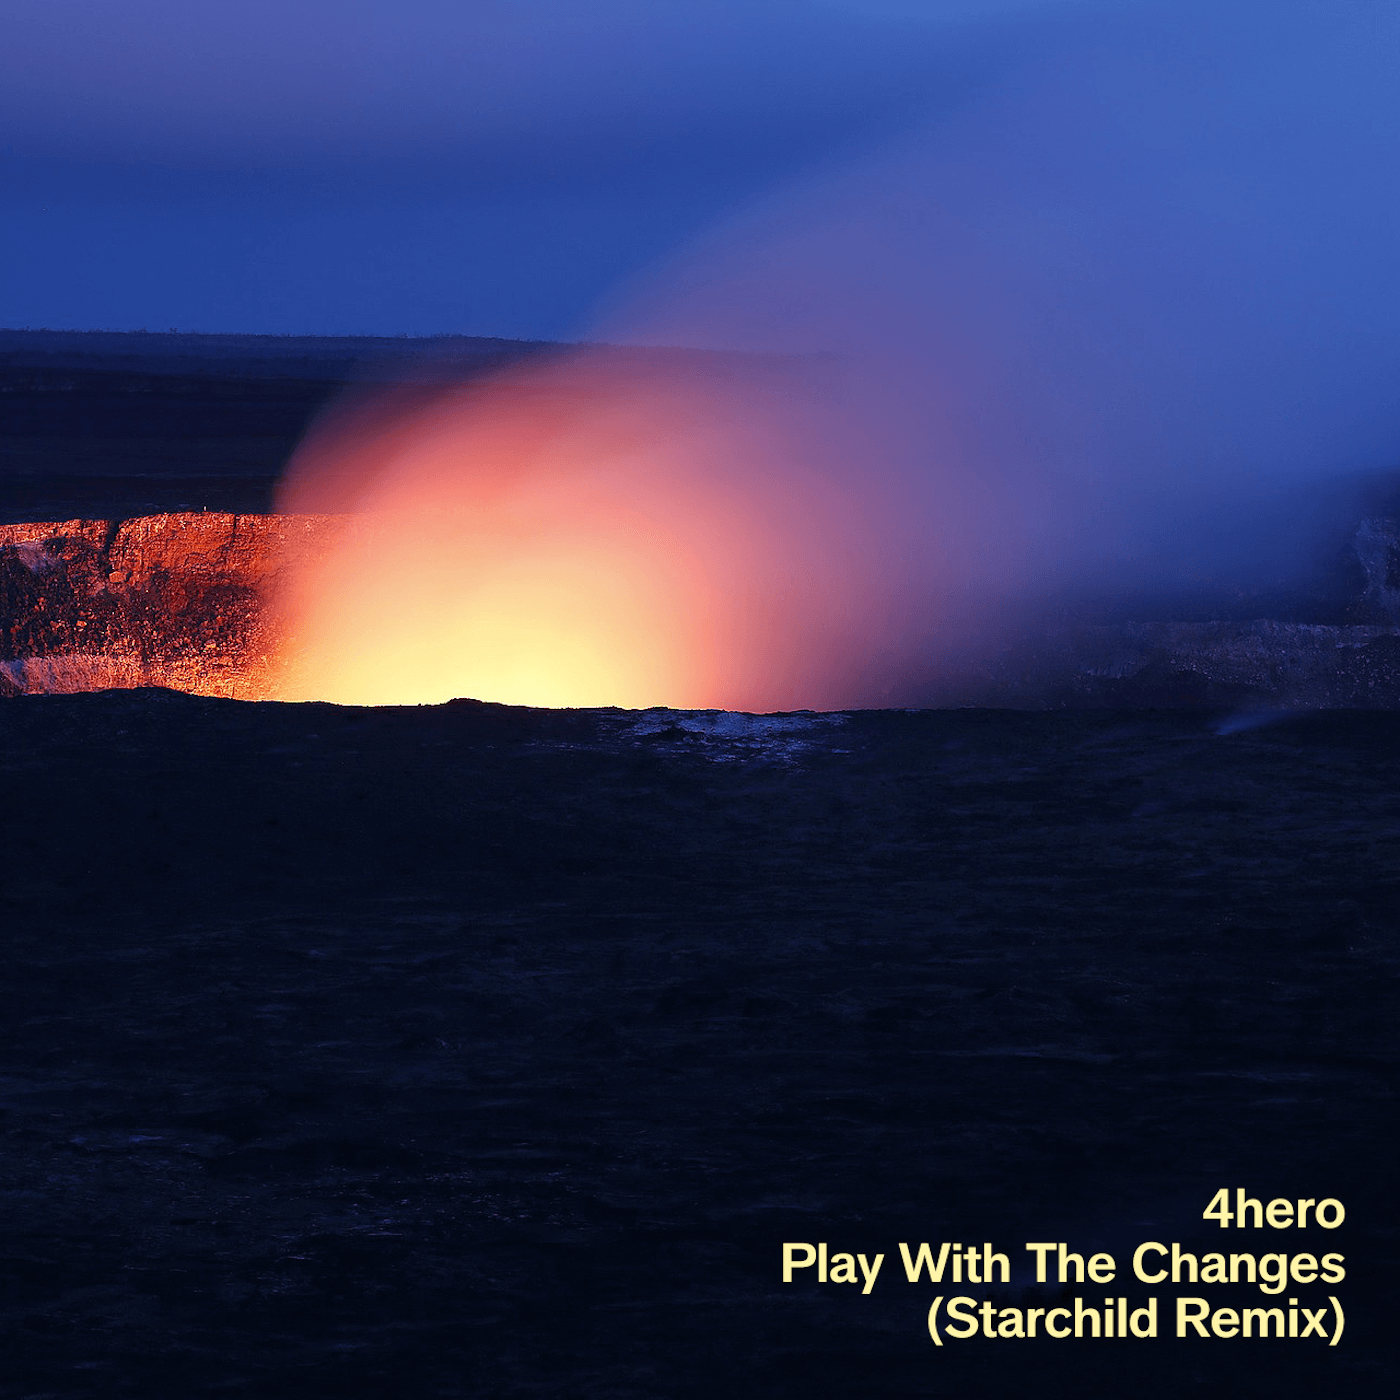 4hero - Play With The Changes (Starchild Remix)